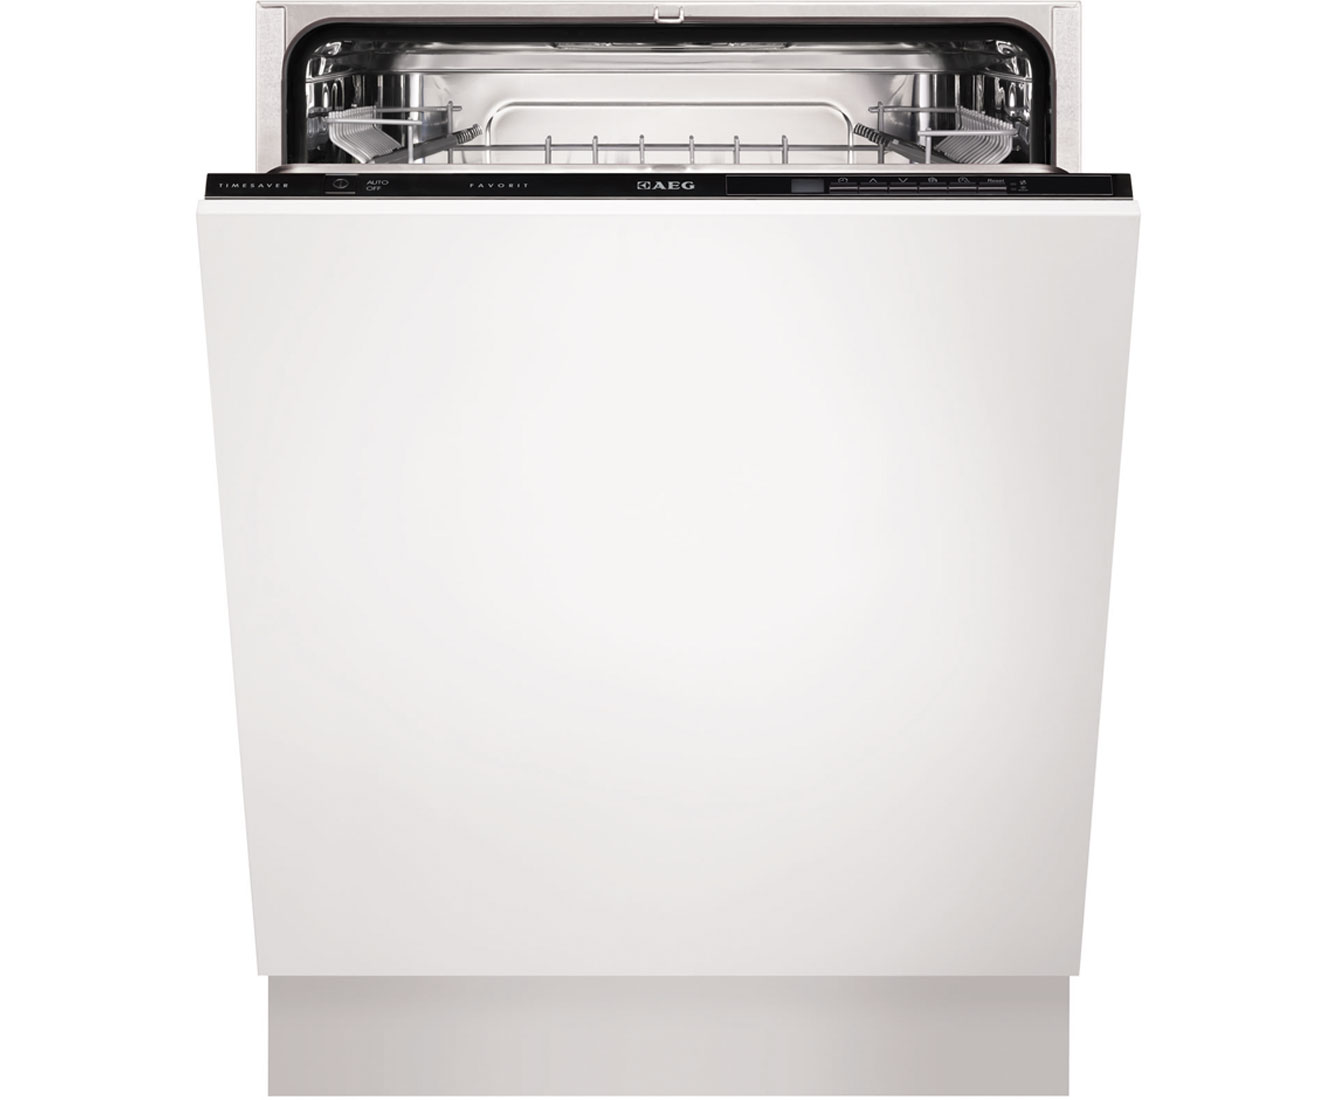 Aeg Favorit Fully Integrated Dishwasher F55320vi0 The Appliance